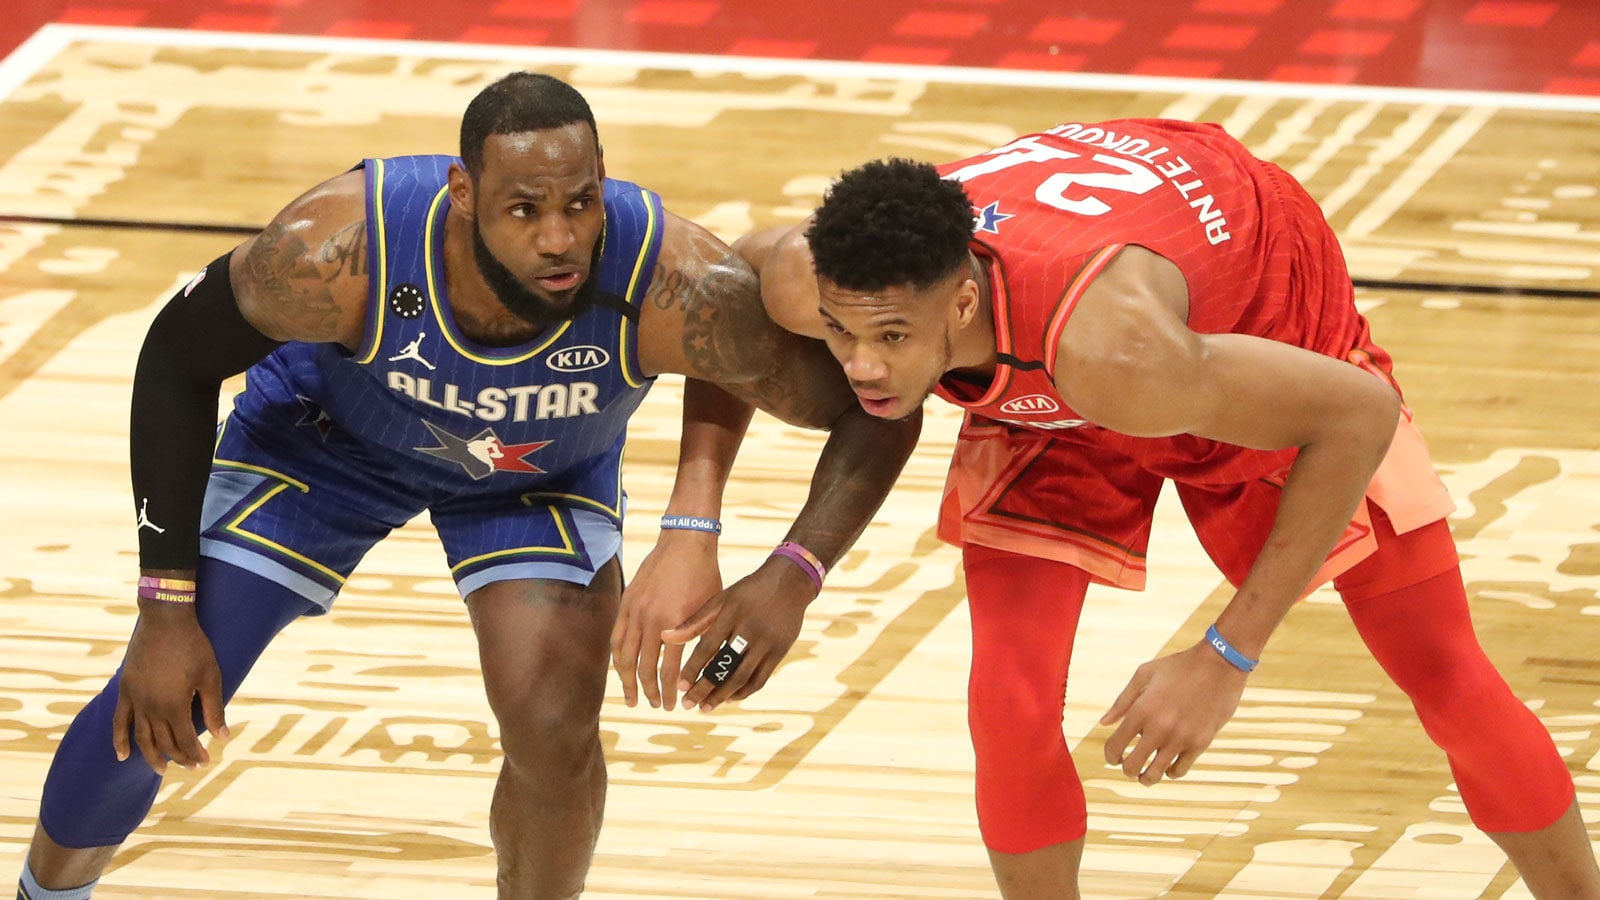 Instant Classic breaks out in Chicago as Team LeBron defeats ...